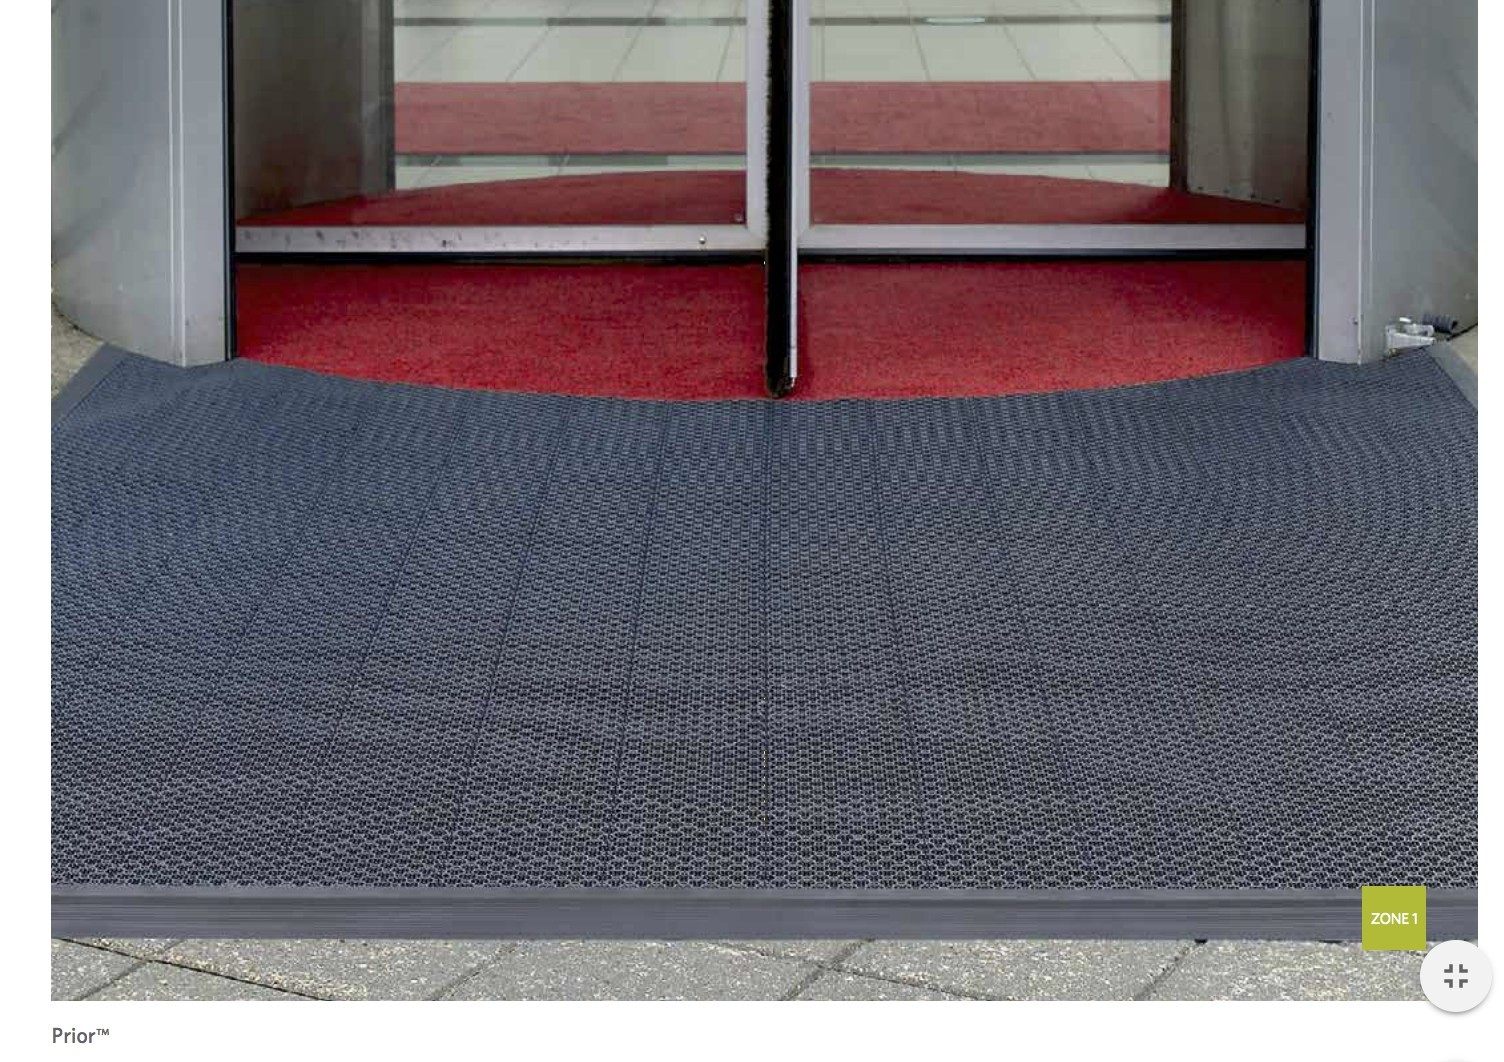 Rubber Entrance Flooring Matts, Prior 11C, Forma 2 0 11c